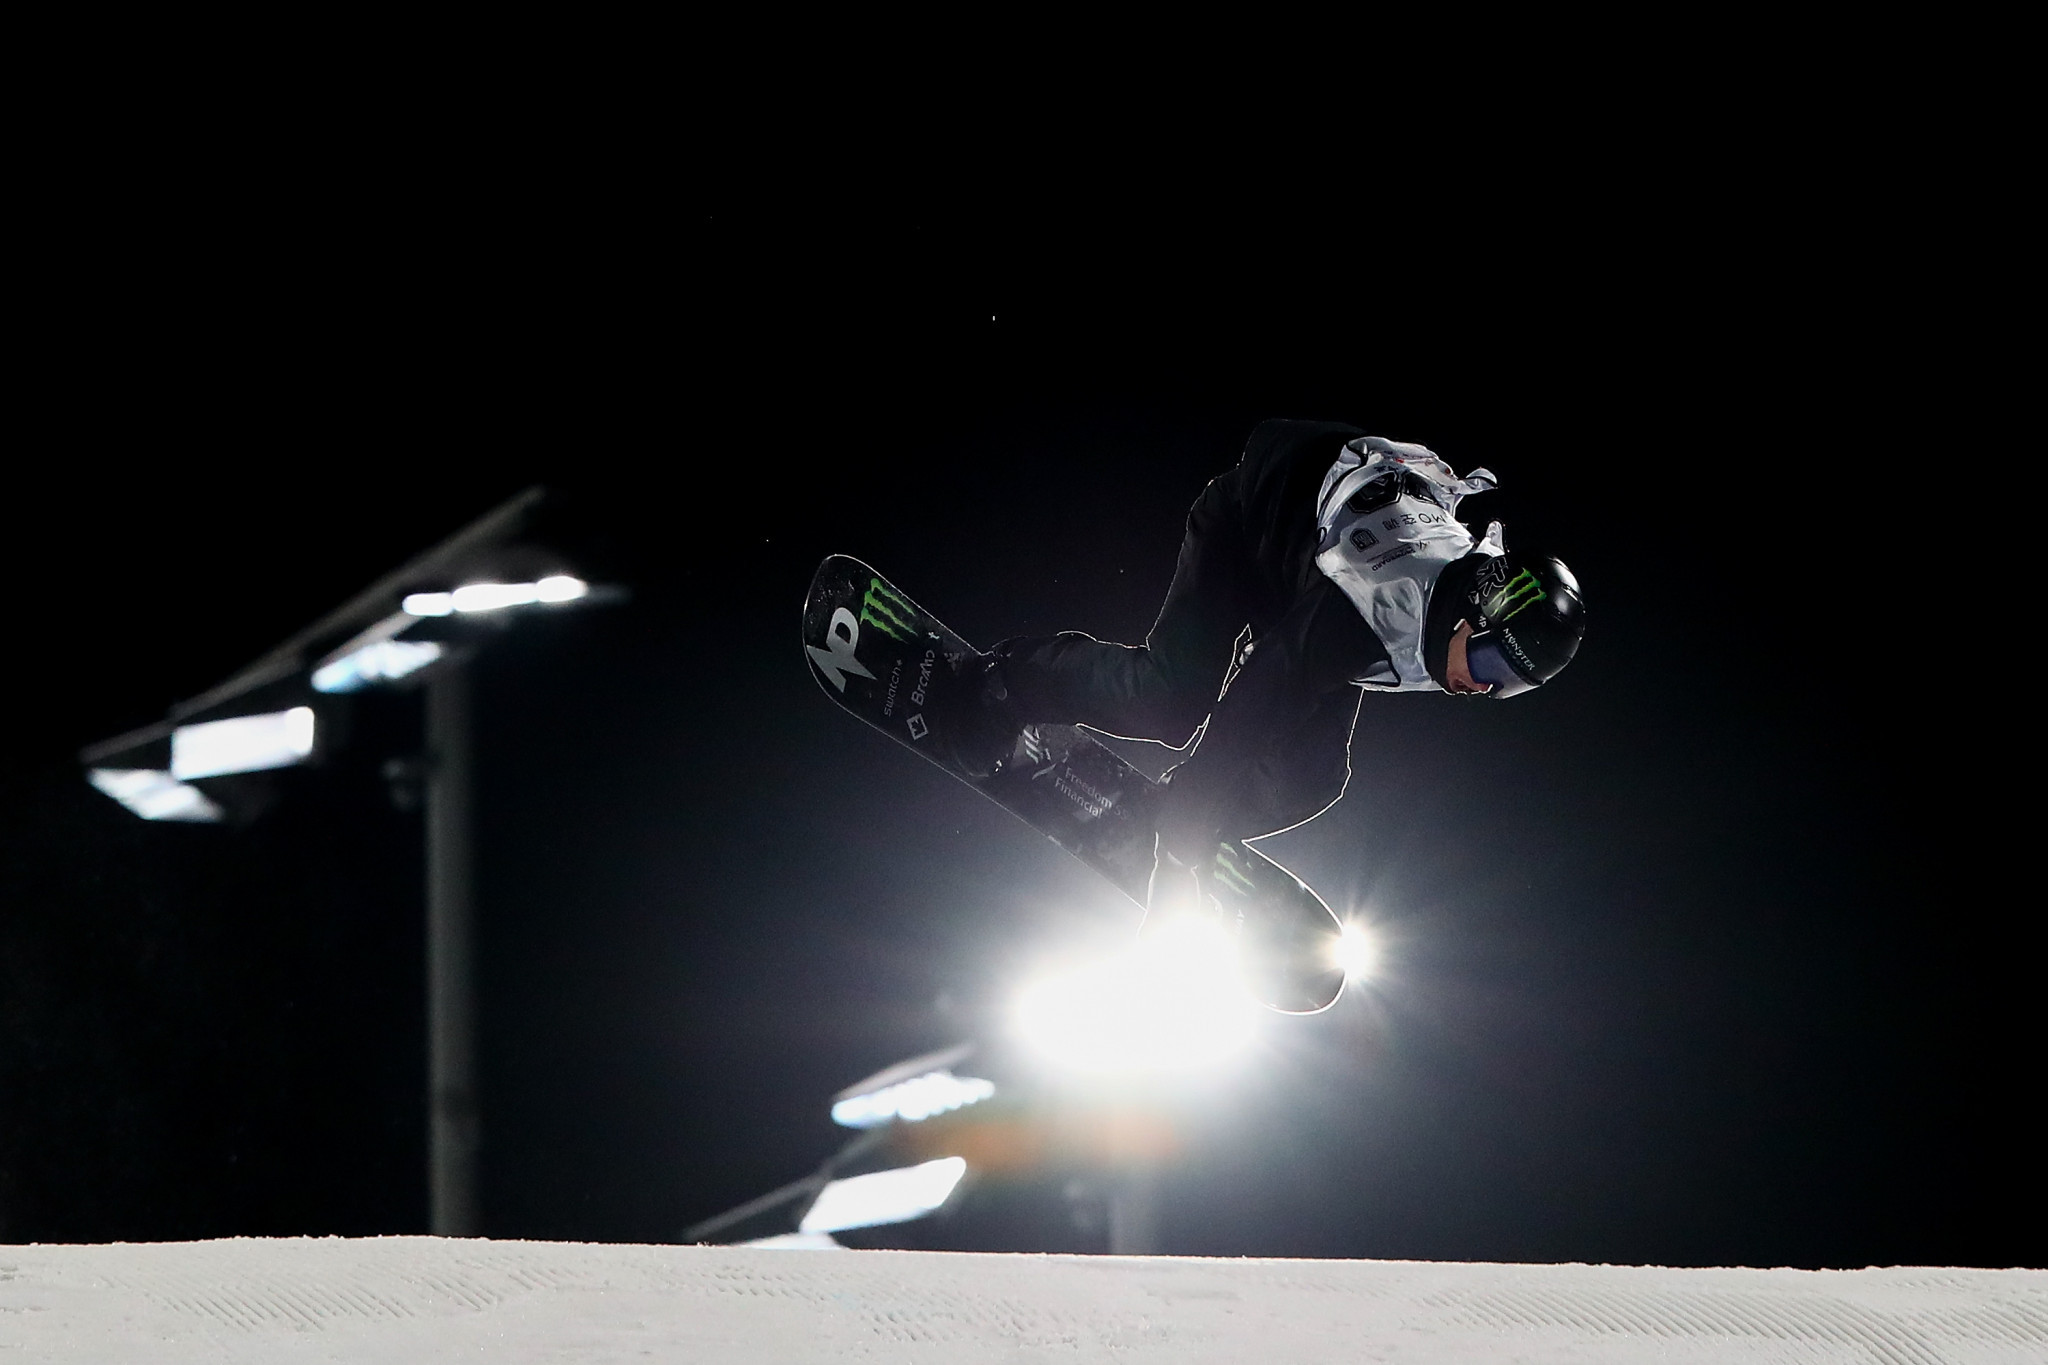 Max Parrot won the men's big air event last year in Beijing ©Getty Images